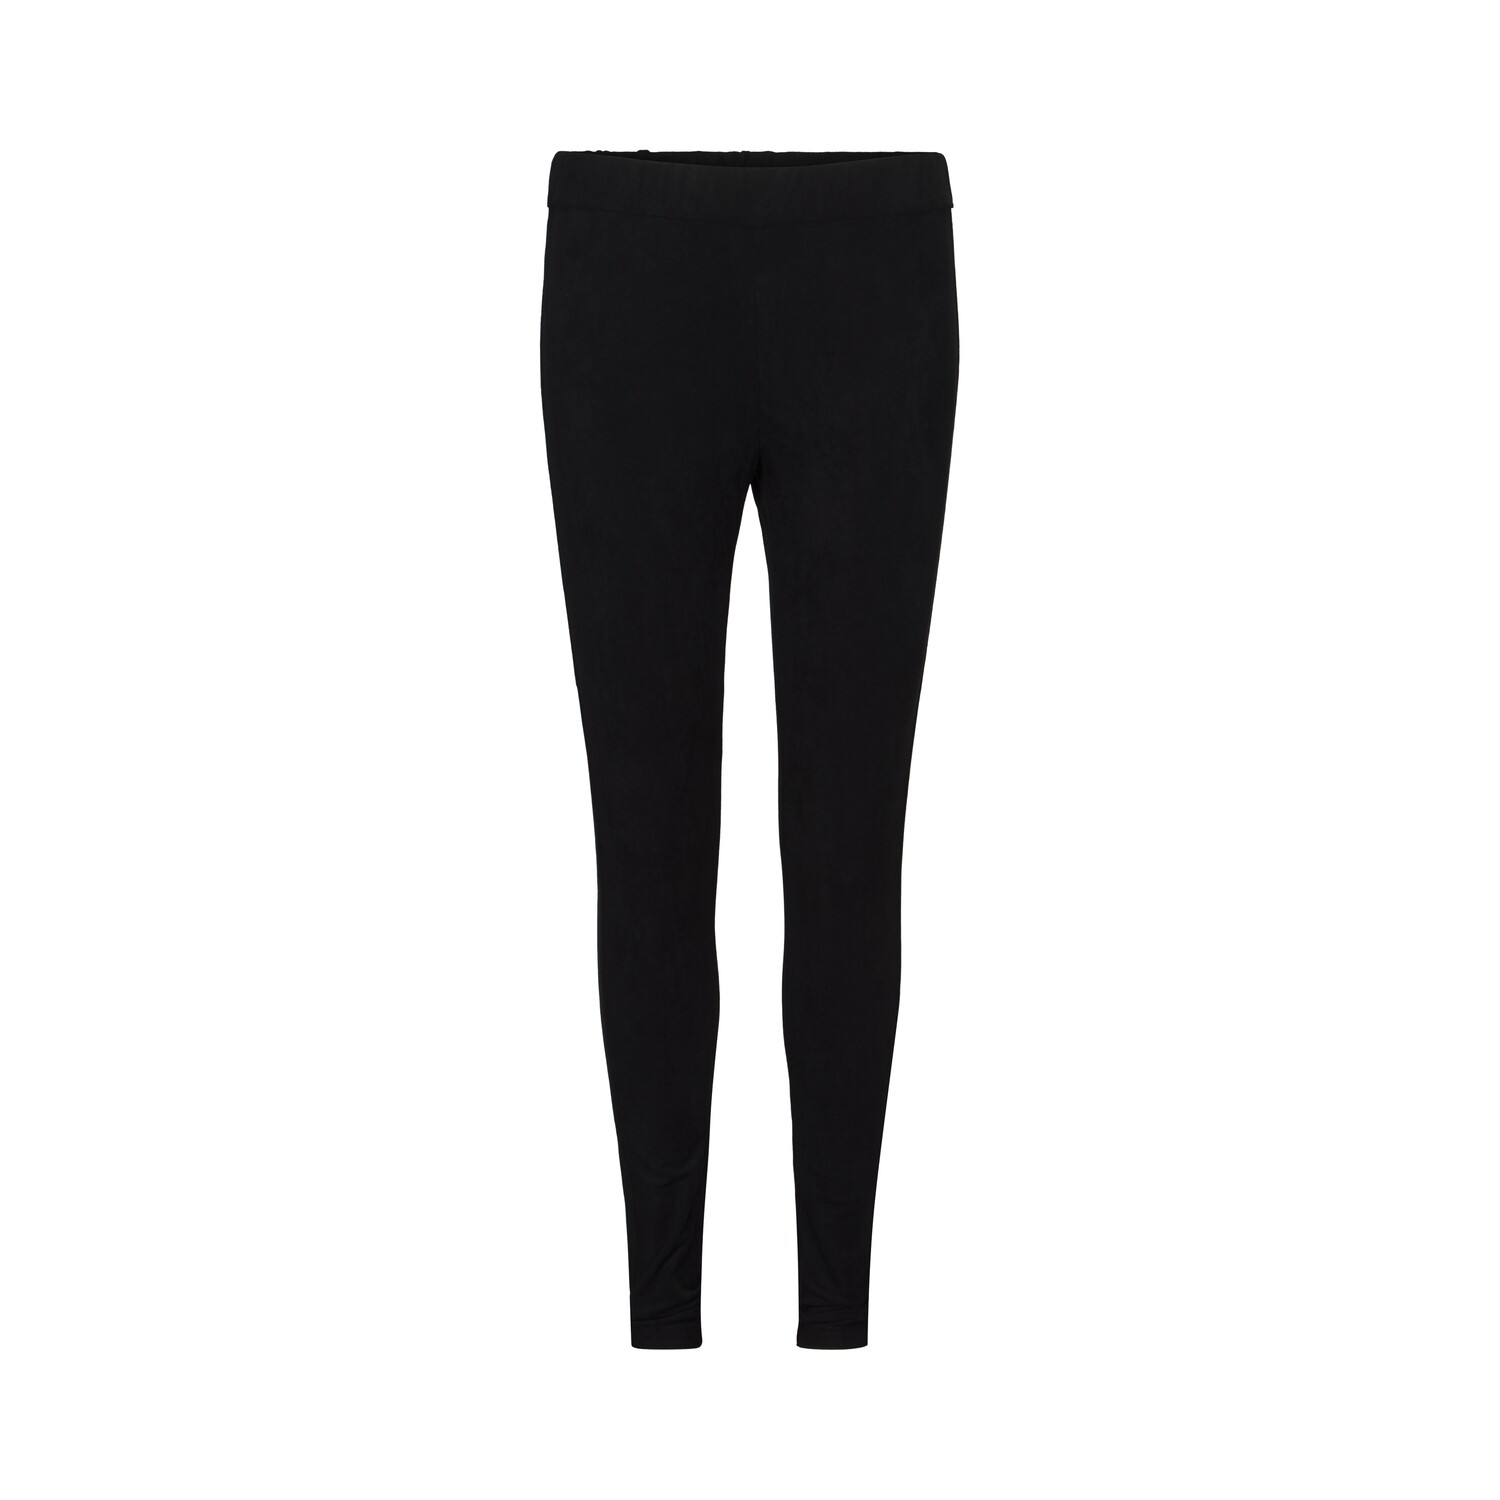 "Leggins Wildleder Optik ""schwarz"""